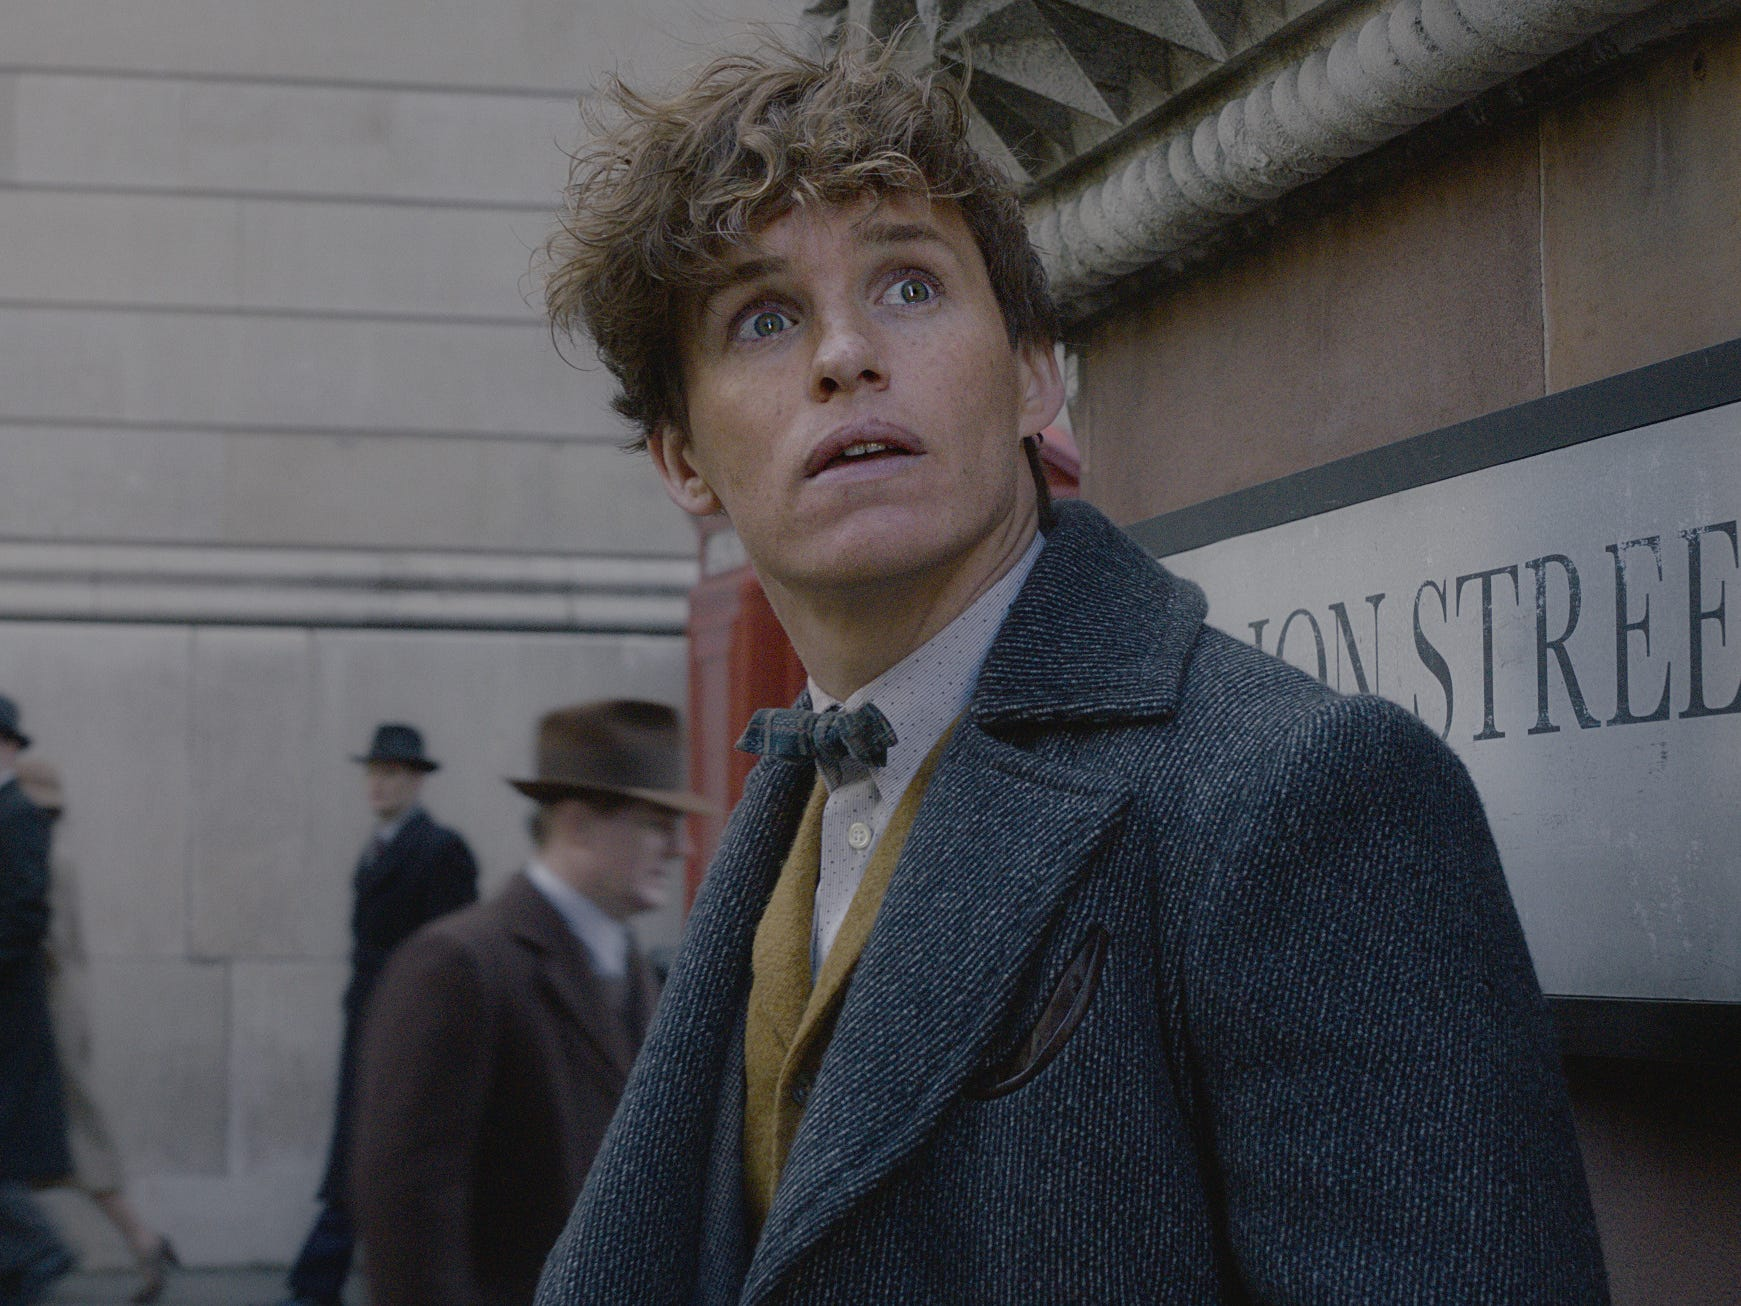 Decoding the big reveals of 'Fantastic Beasts: The Crimes of Grindelwald' (spoilers!)